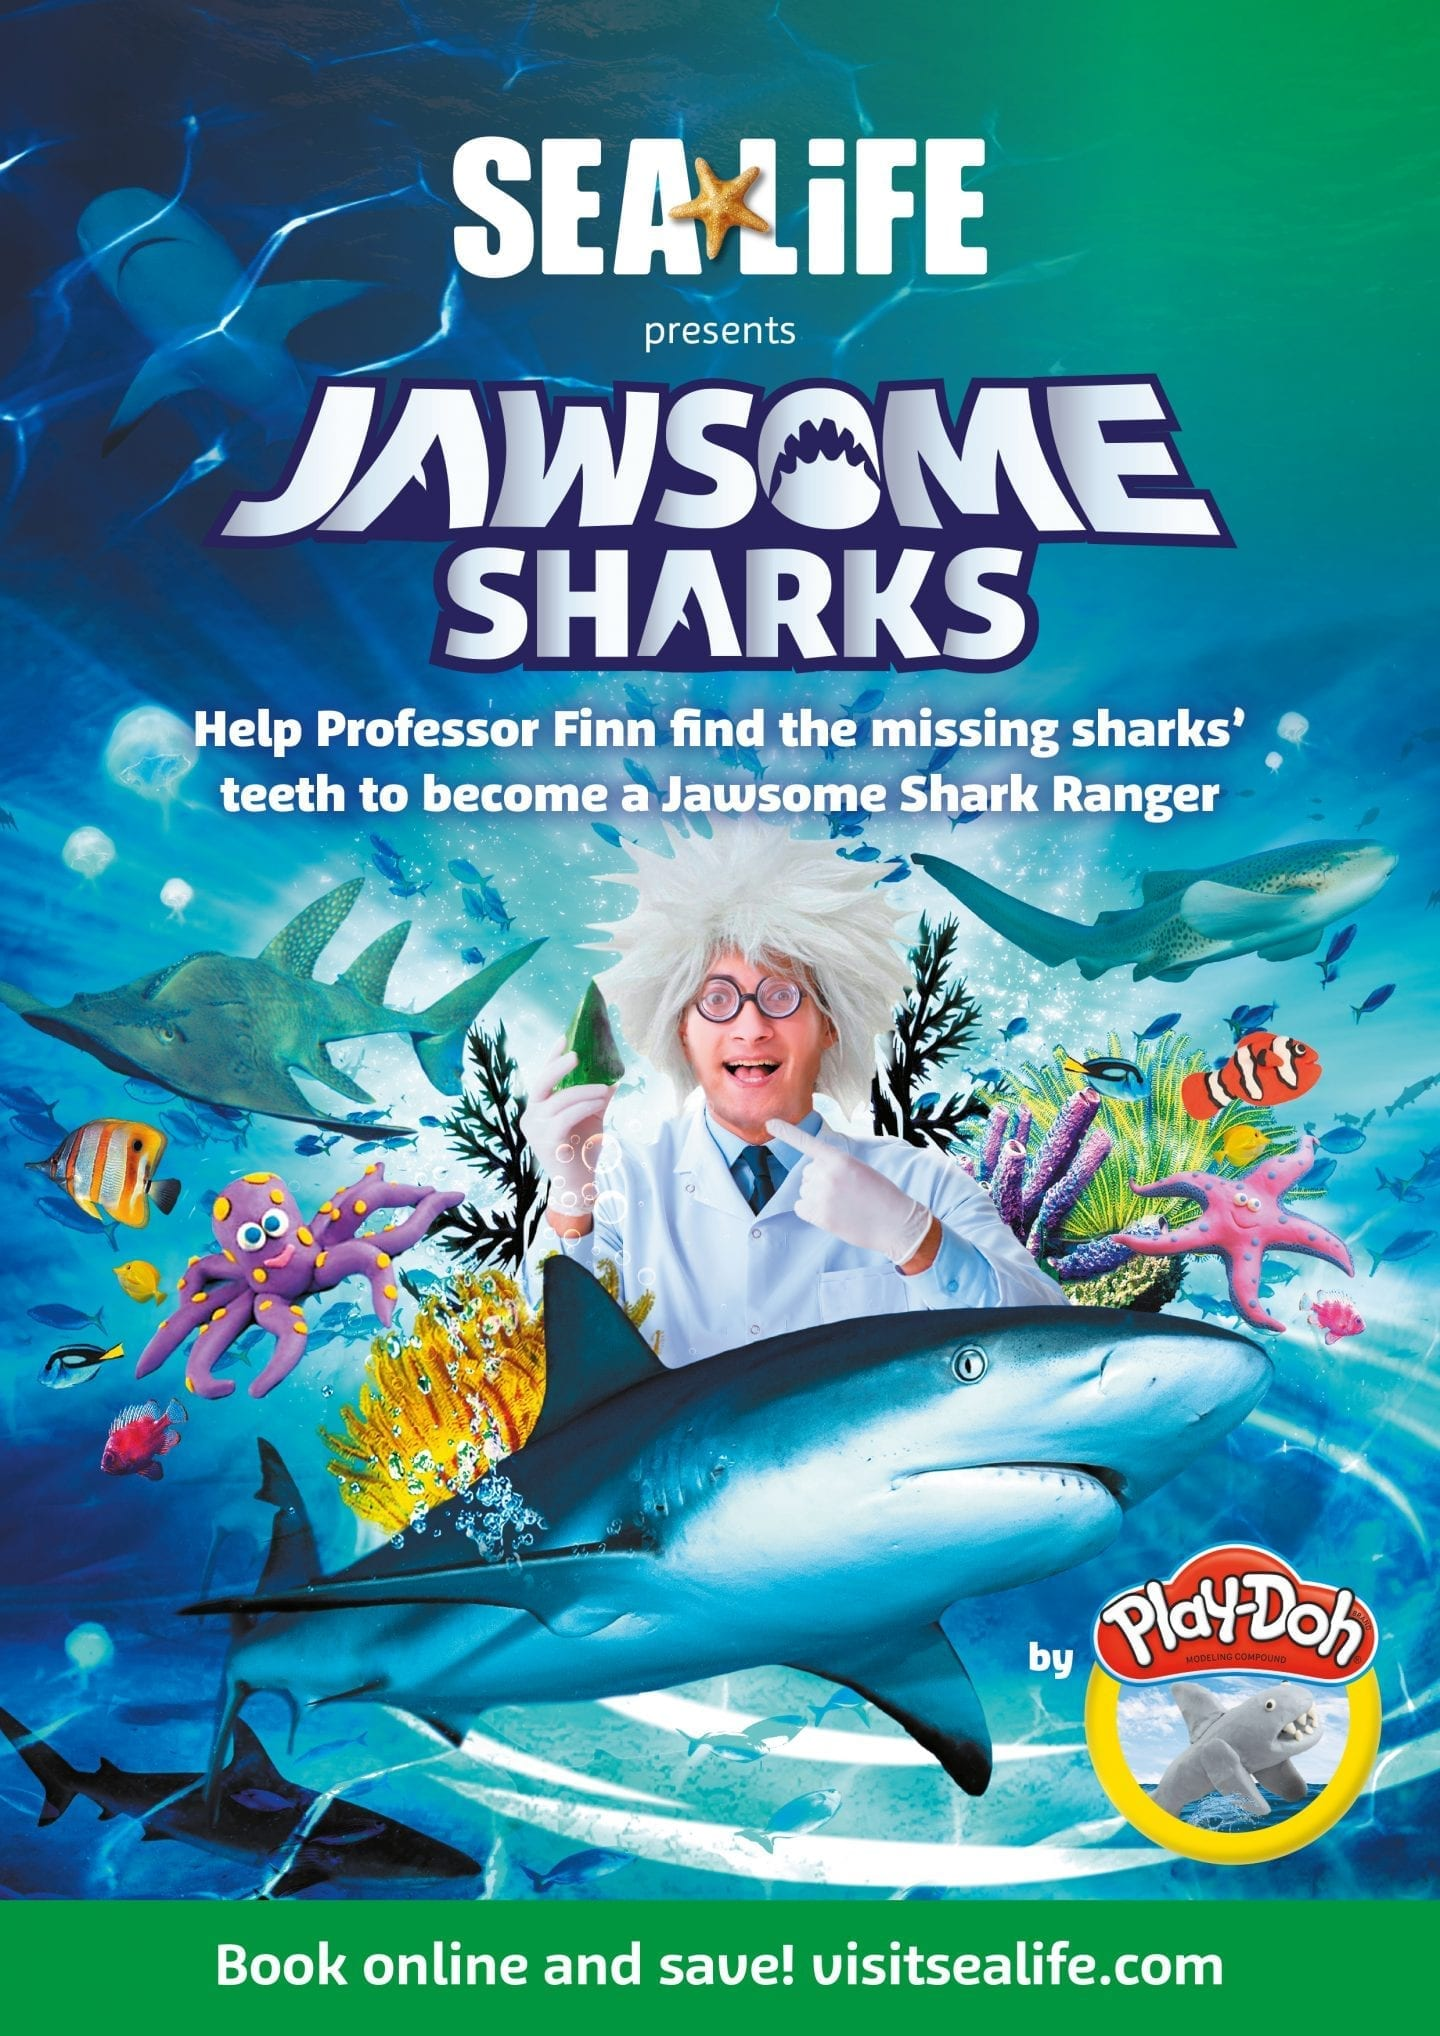 sea life jawsome sharks play-doh event poster